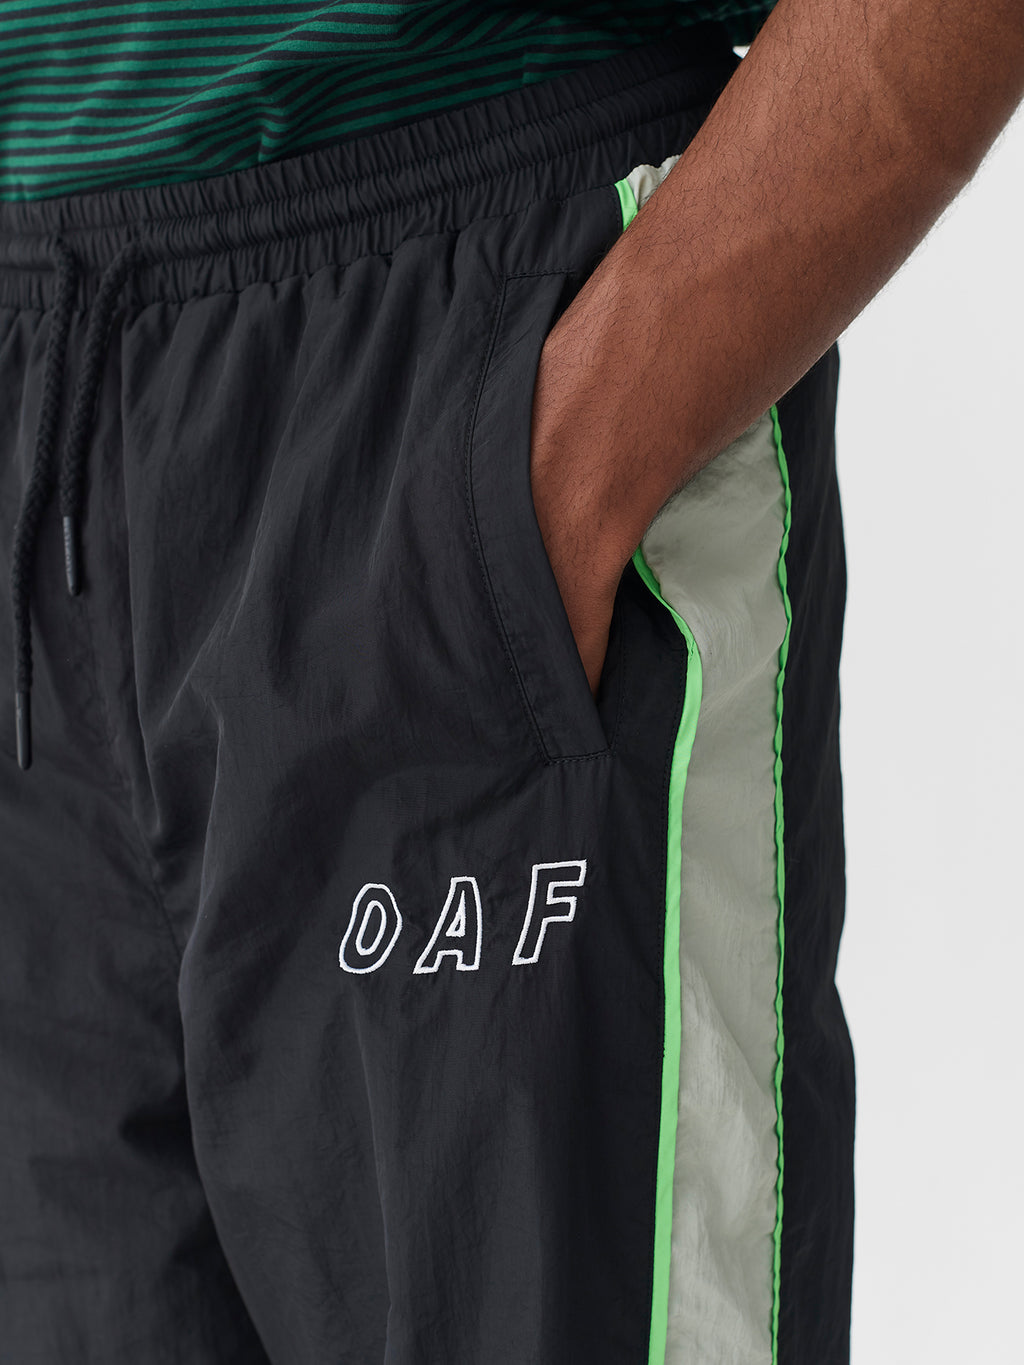 Lazy Oaf Oaf Track Pants